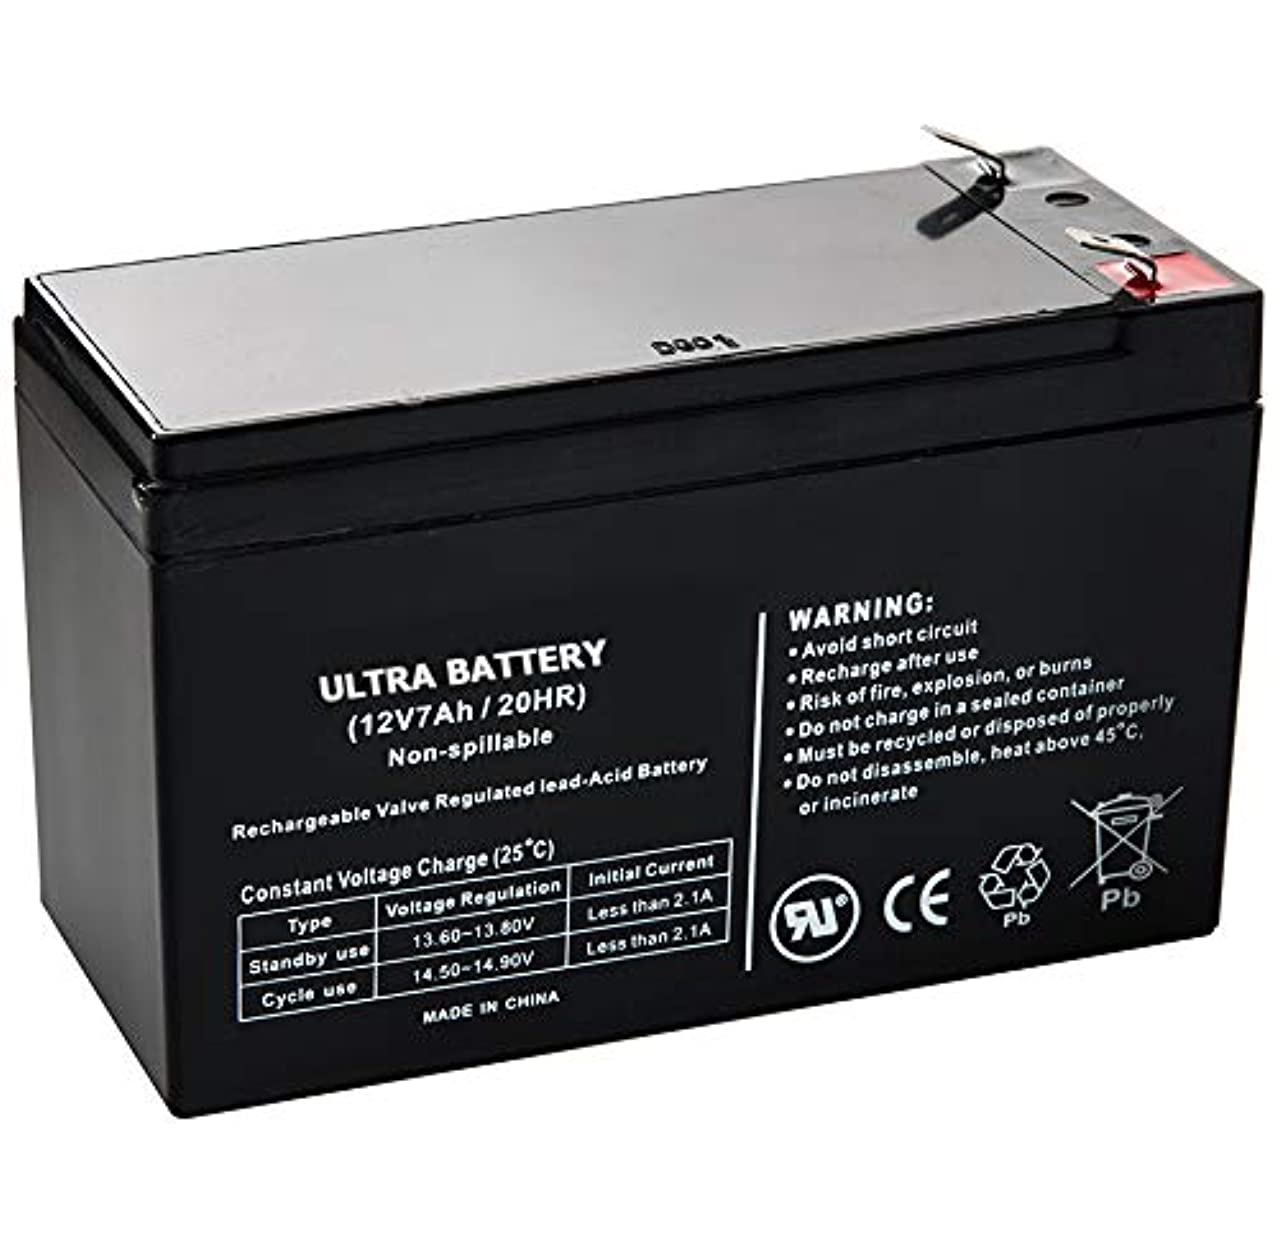 APC BackUPS CS500 12V 7Ah UPS Battery - This is an Ultra Power Replacement